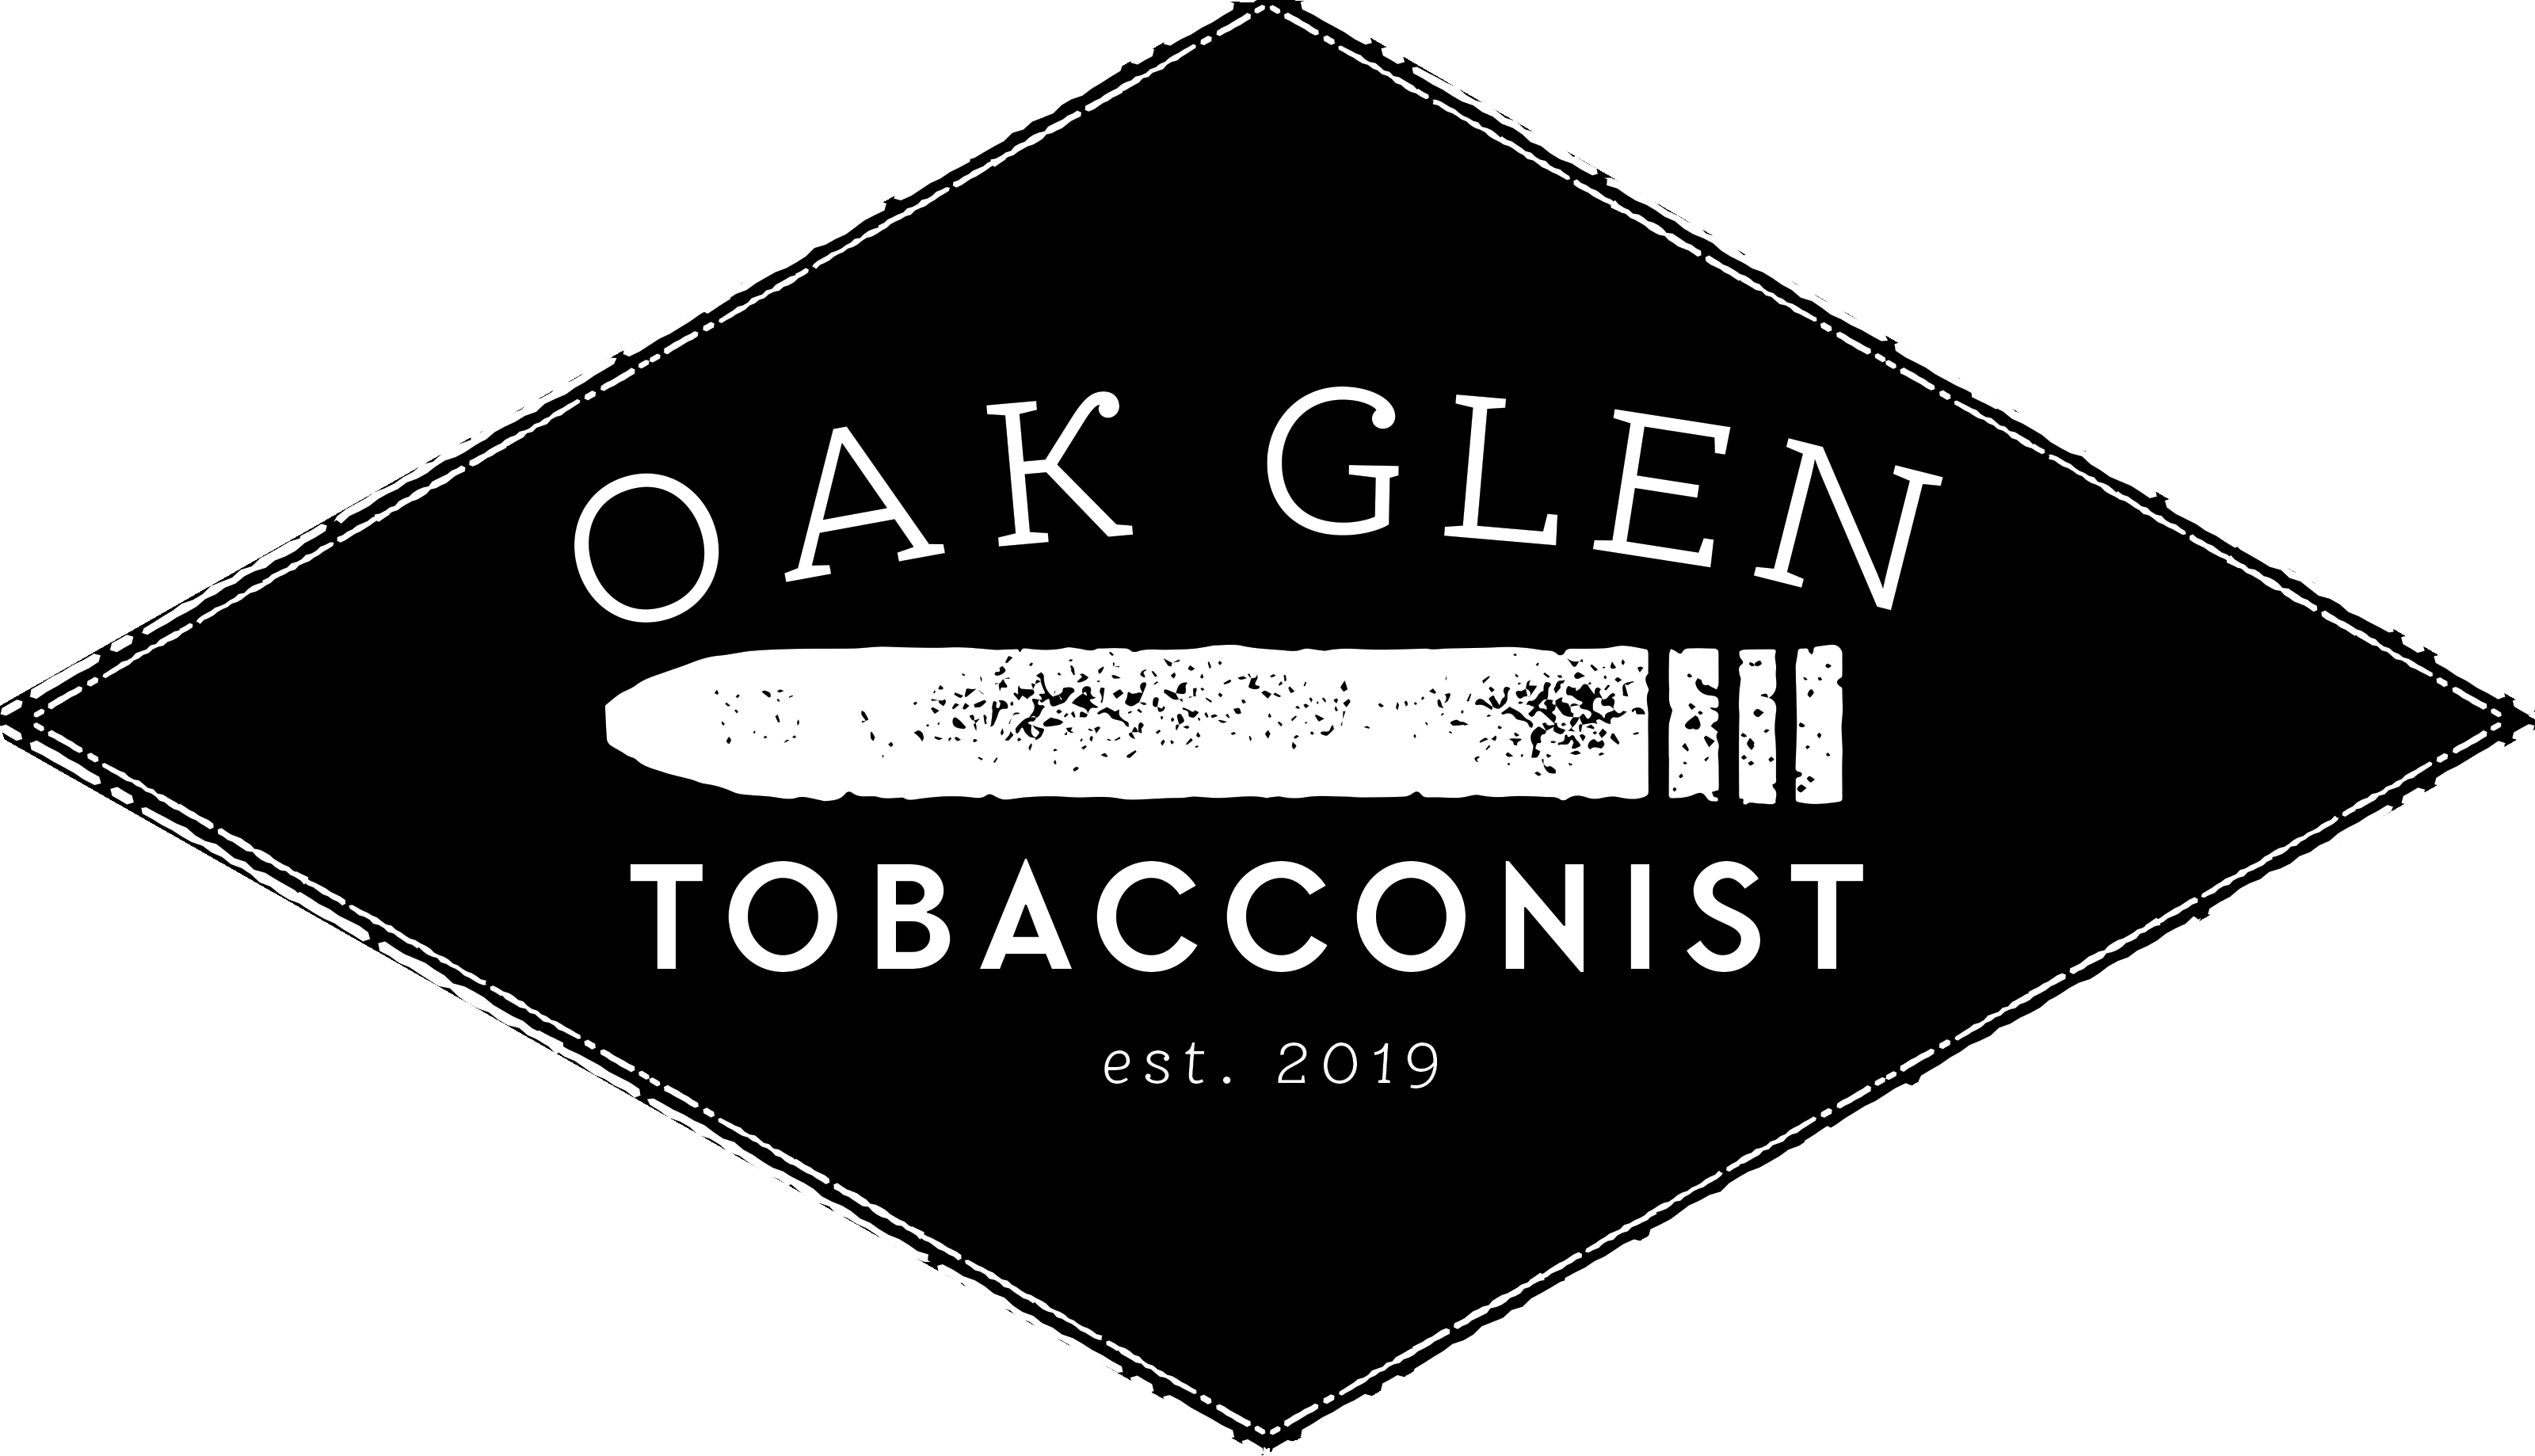 Oak Glen Tobacconist